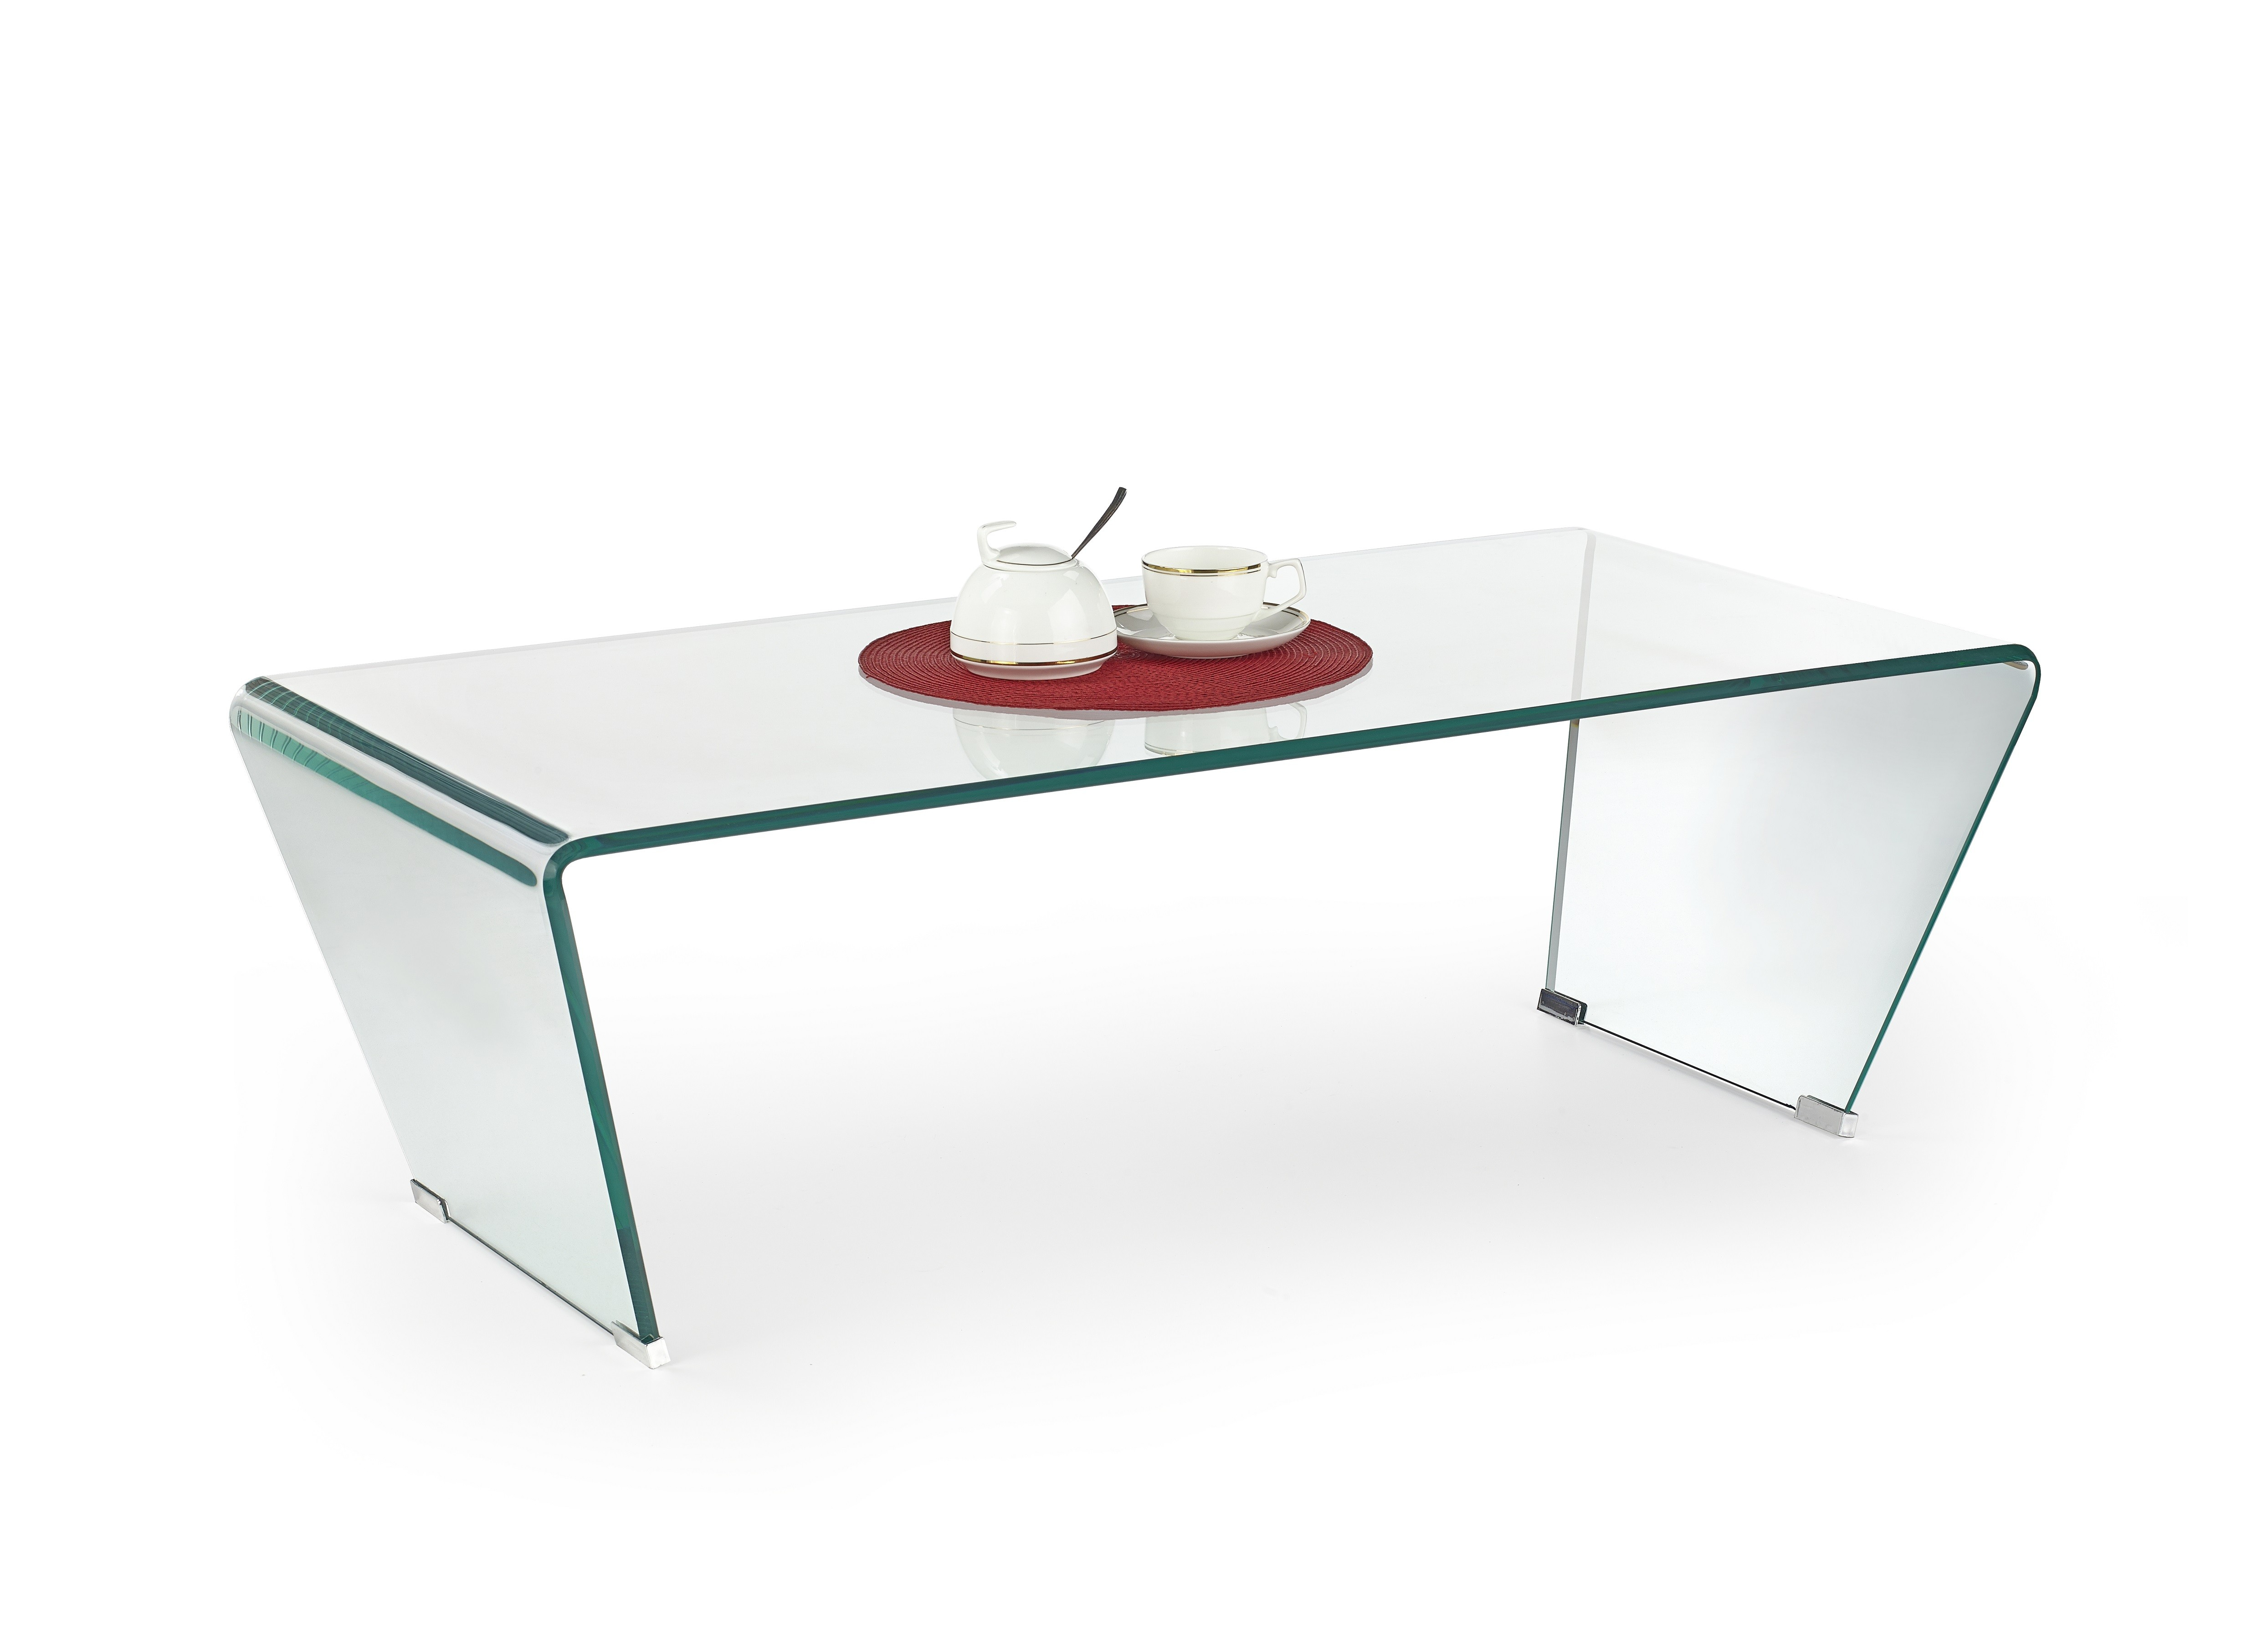 Olly Clear Bent Glass Coffee Table With Angled Legs regarding proportions 4943 X 3627